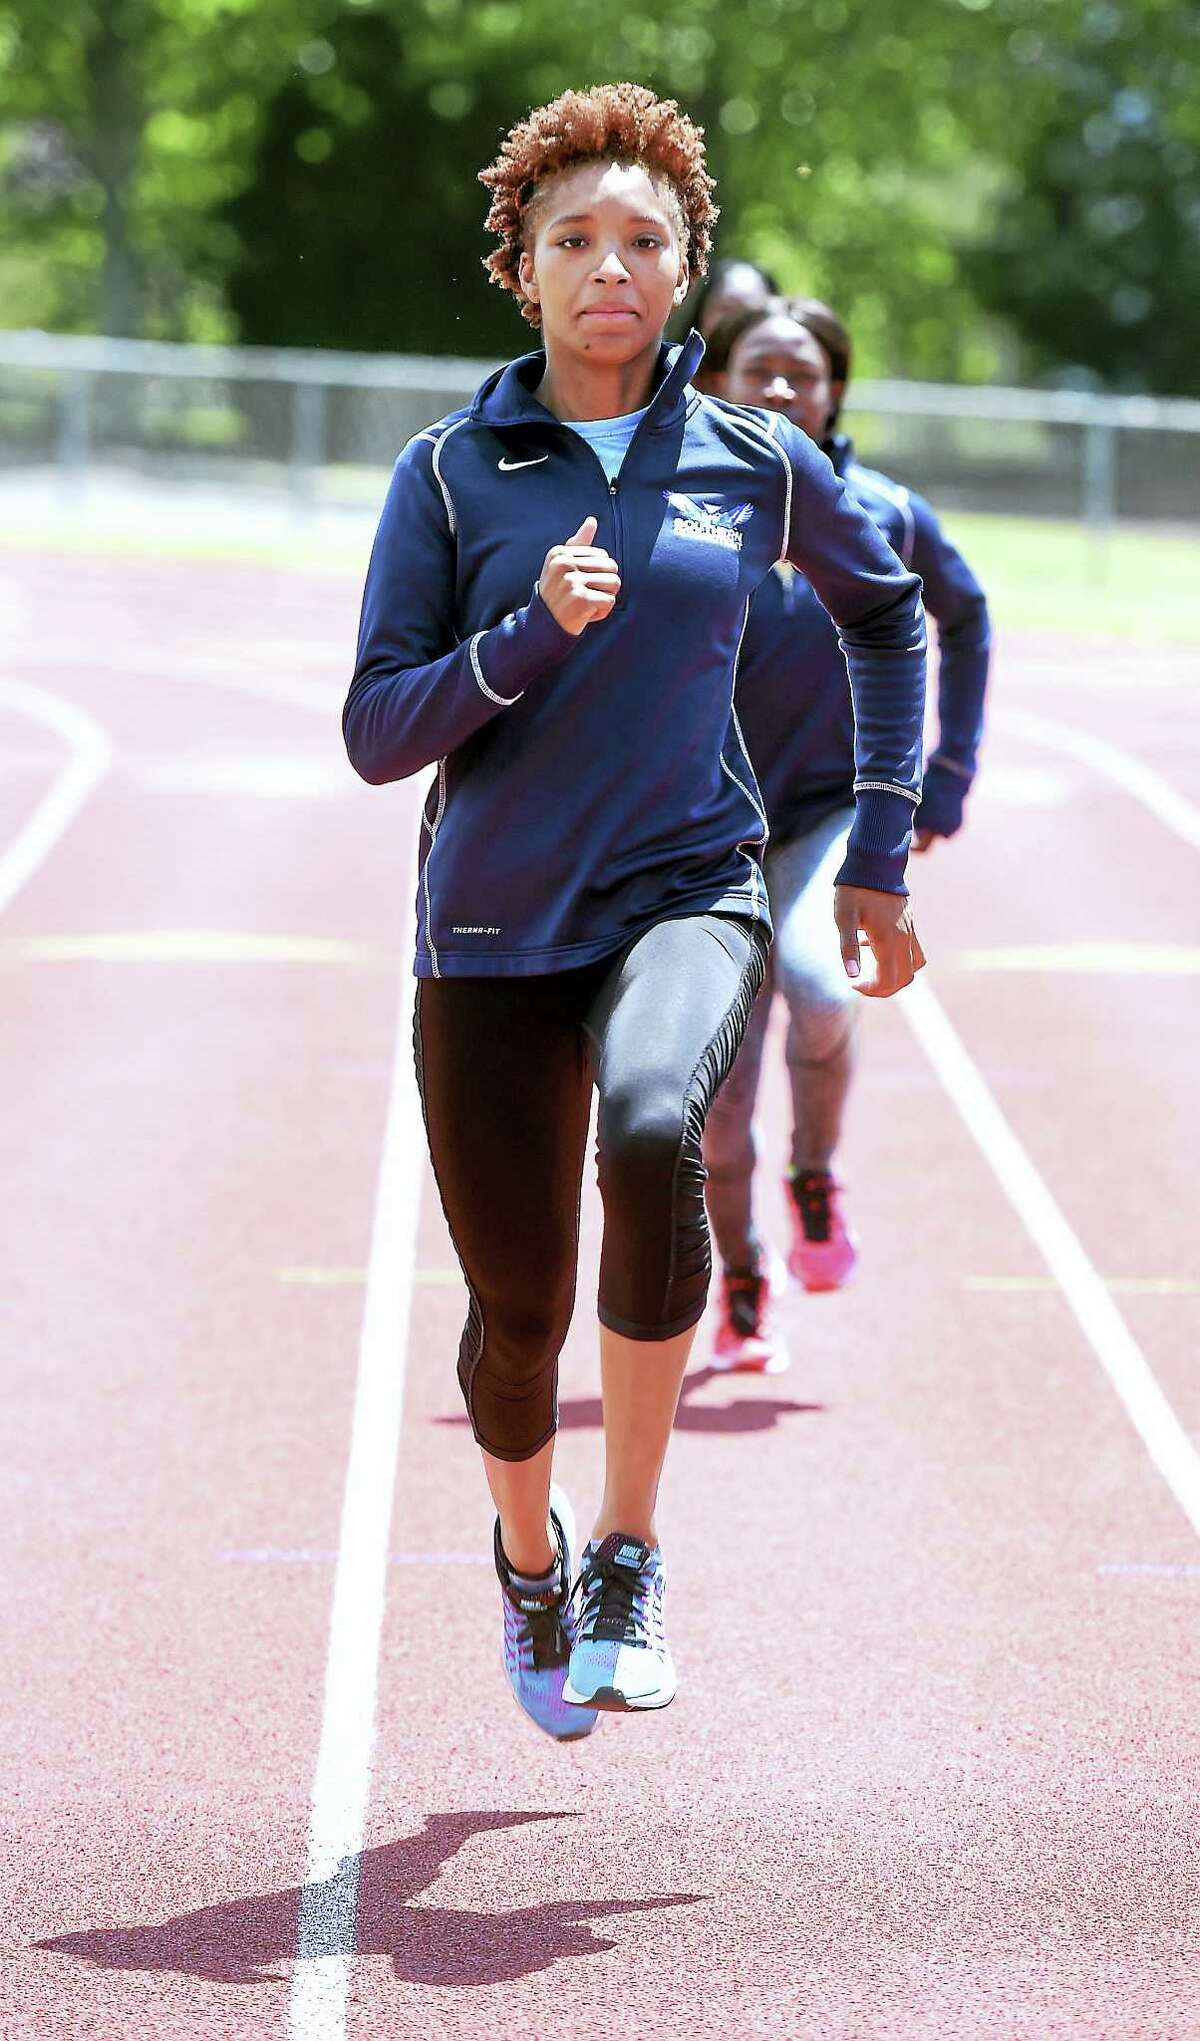 Sprinter Shatajah Wattely practices at Southern Connecticut State University in preparation for the NCAA Division II Outdoor Track and Field Championships.